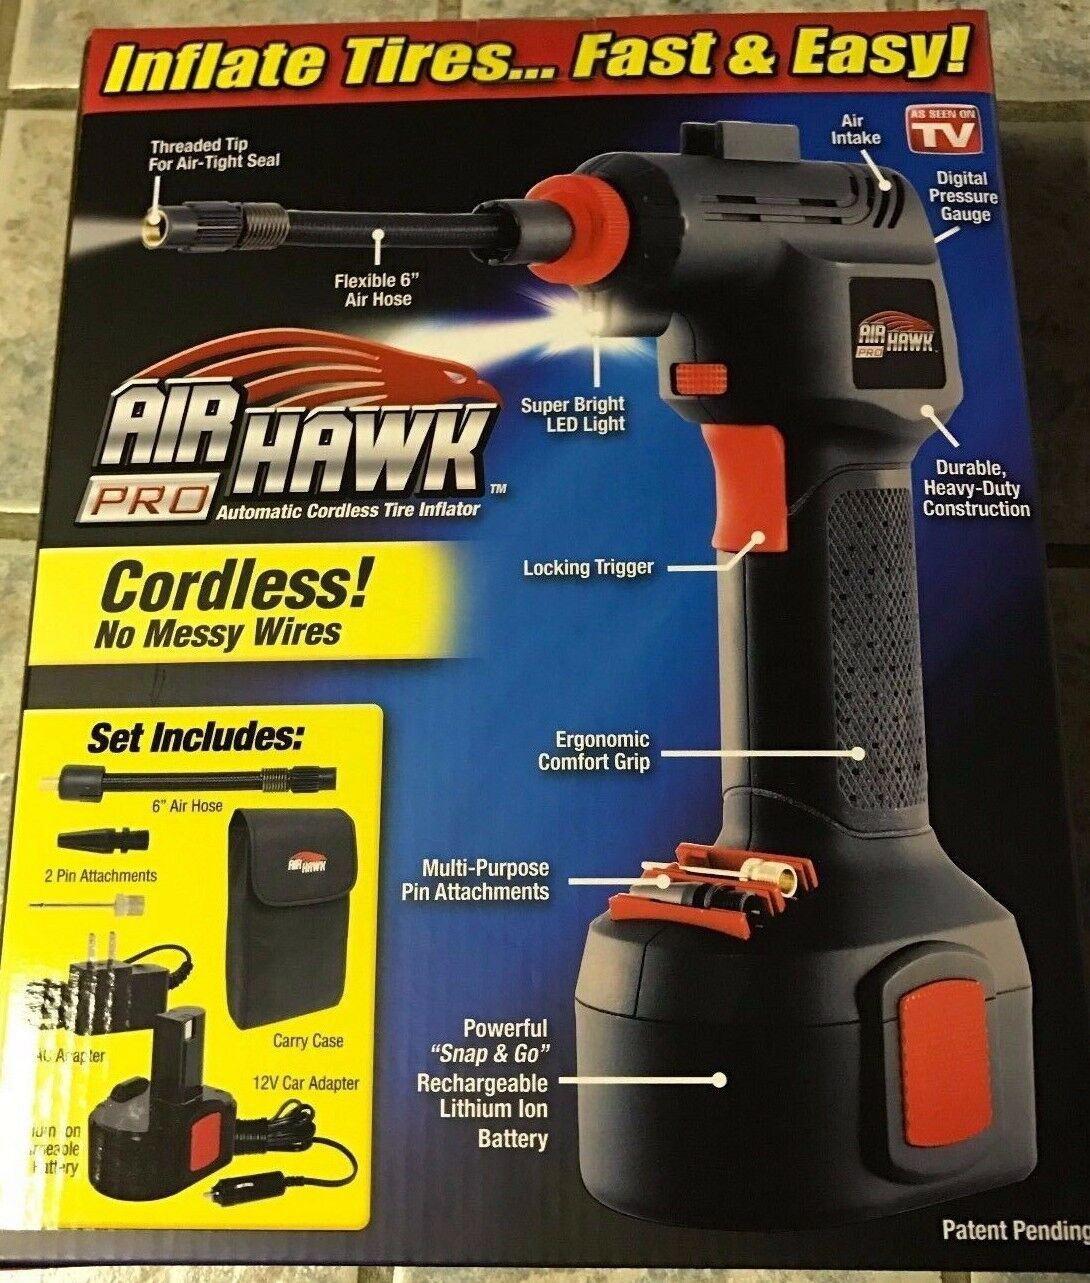 New Air Hawk Pro Automatic Cordless Tire Inflator As Seen